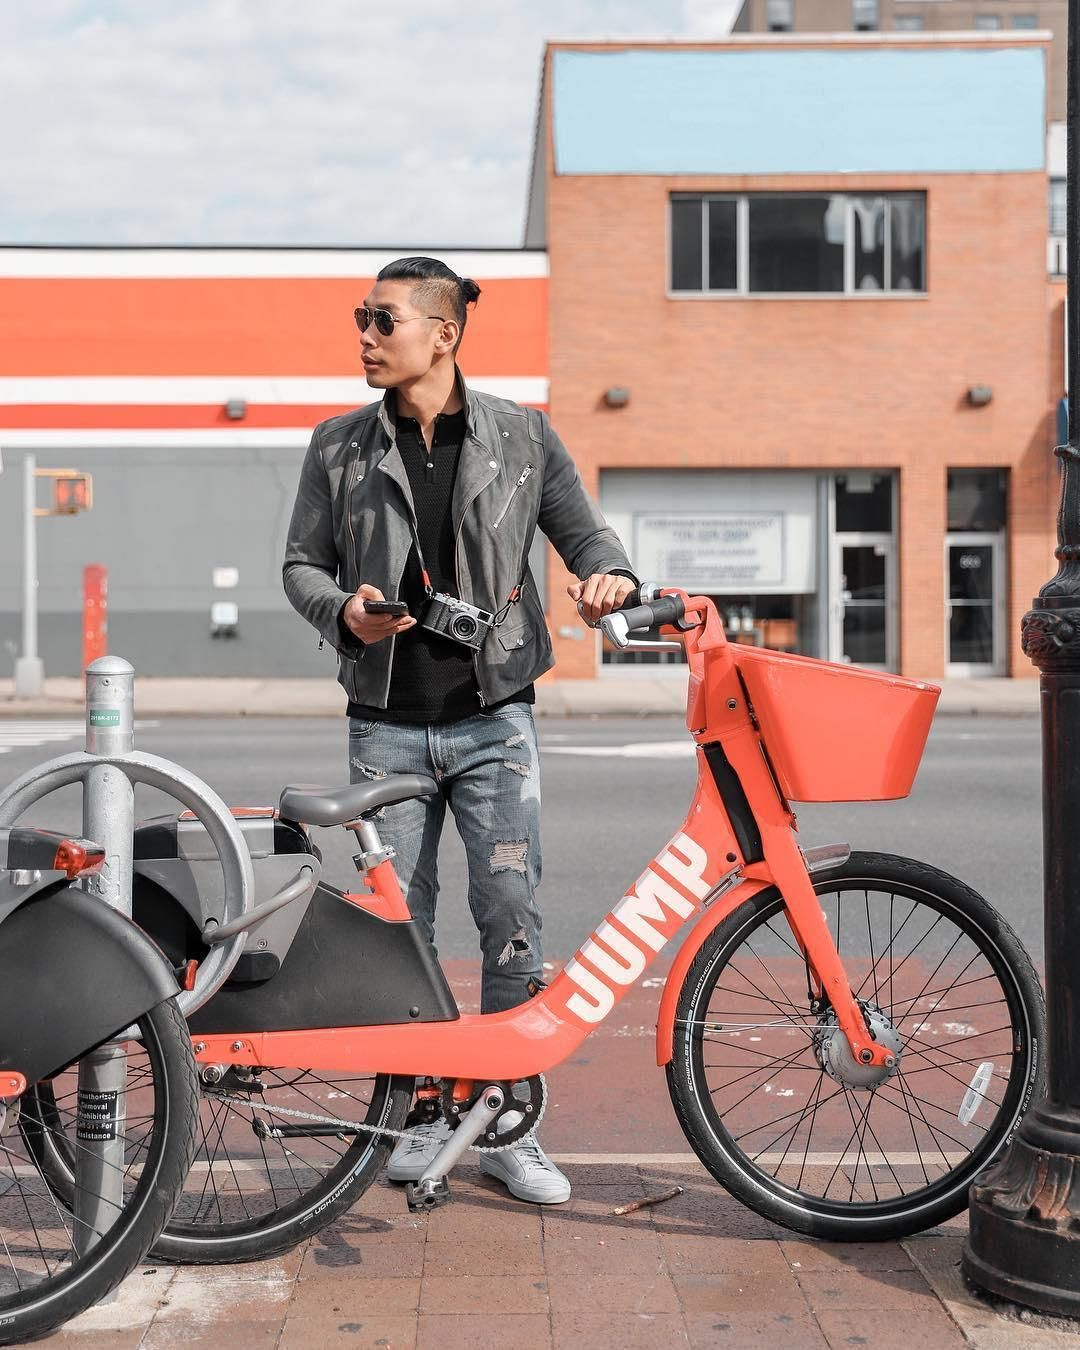 I partnered with @Uber to ride on their JUMP bikes and